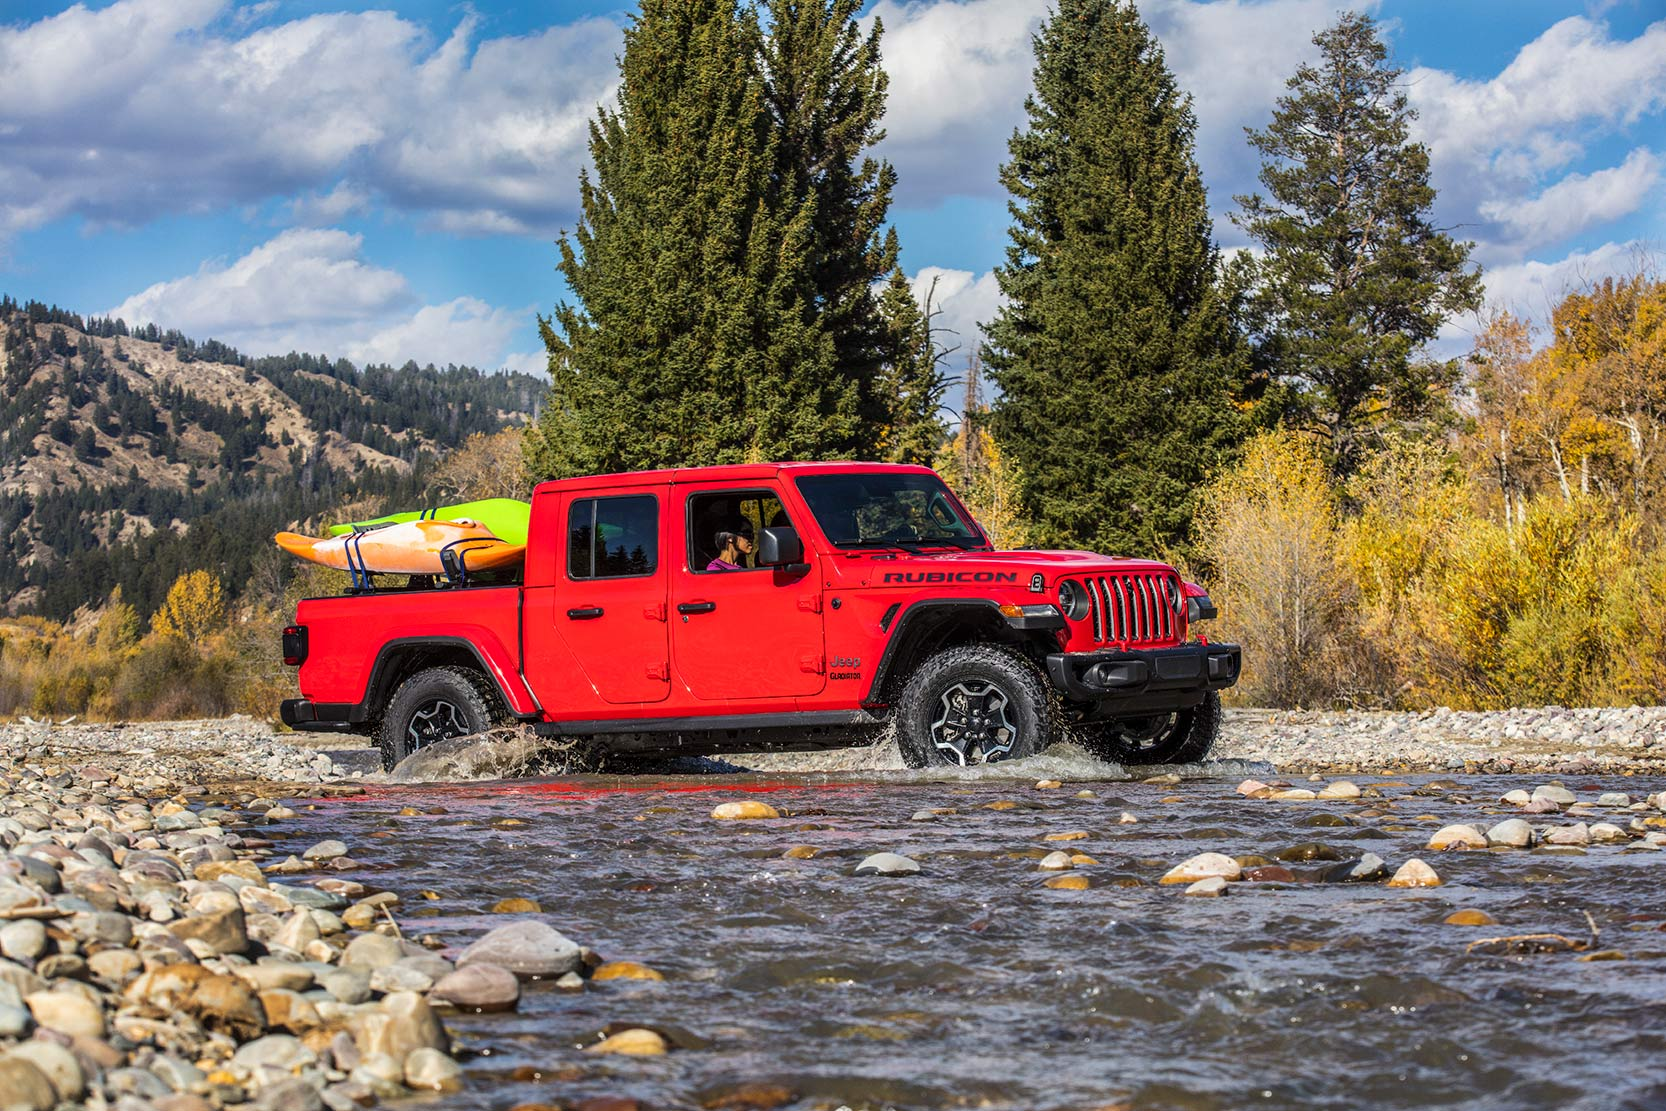 Exterieur_Jeep-Gladiator_39